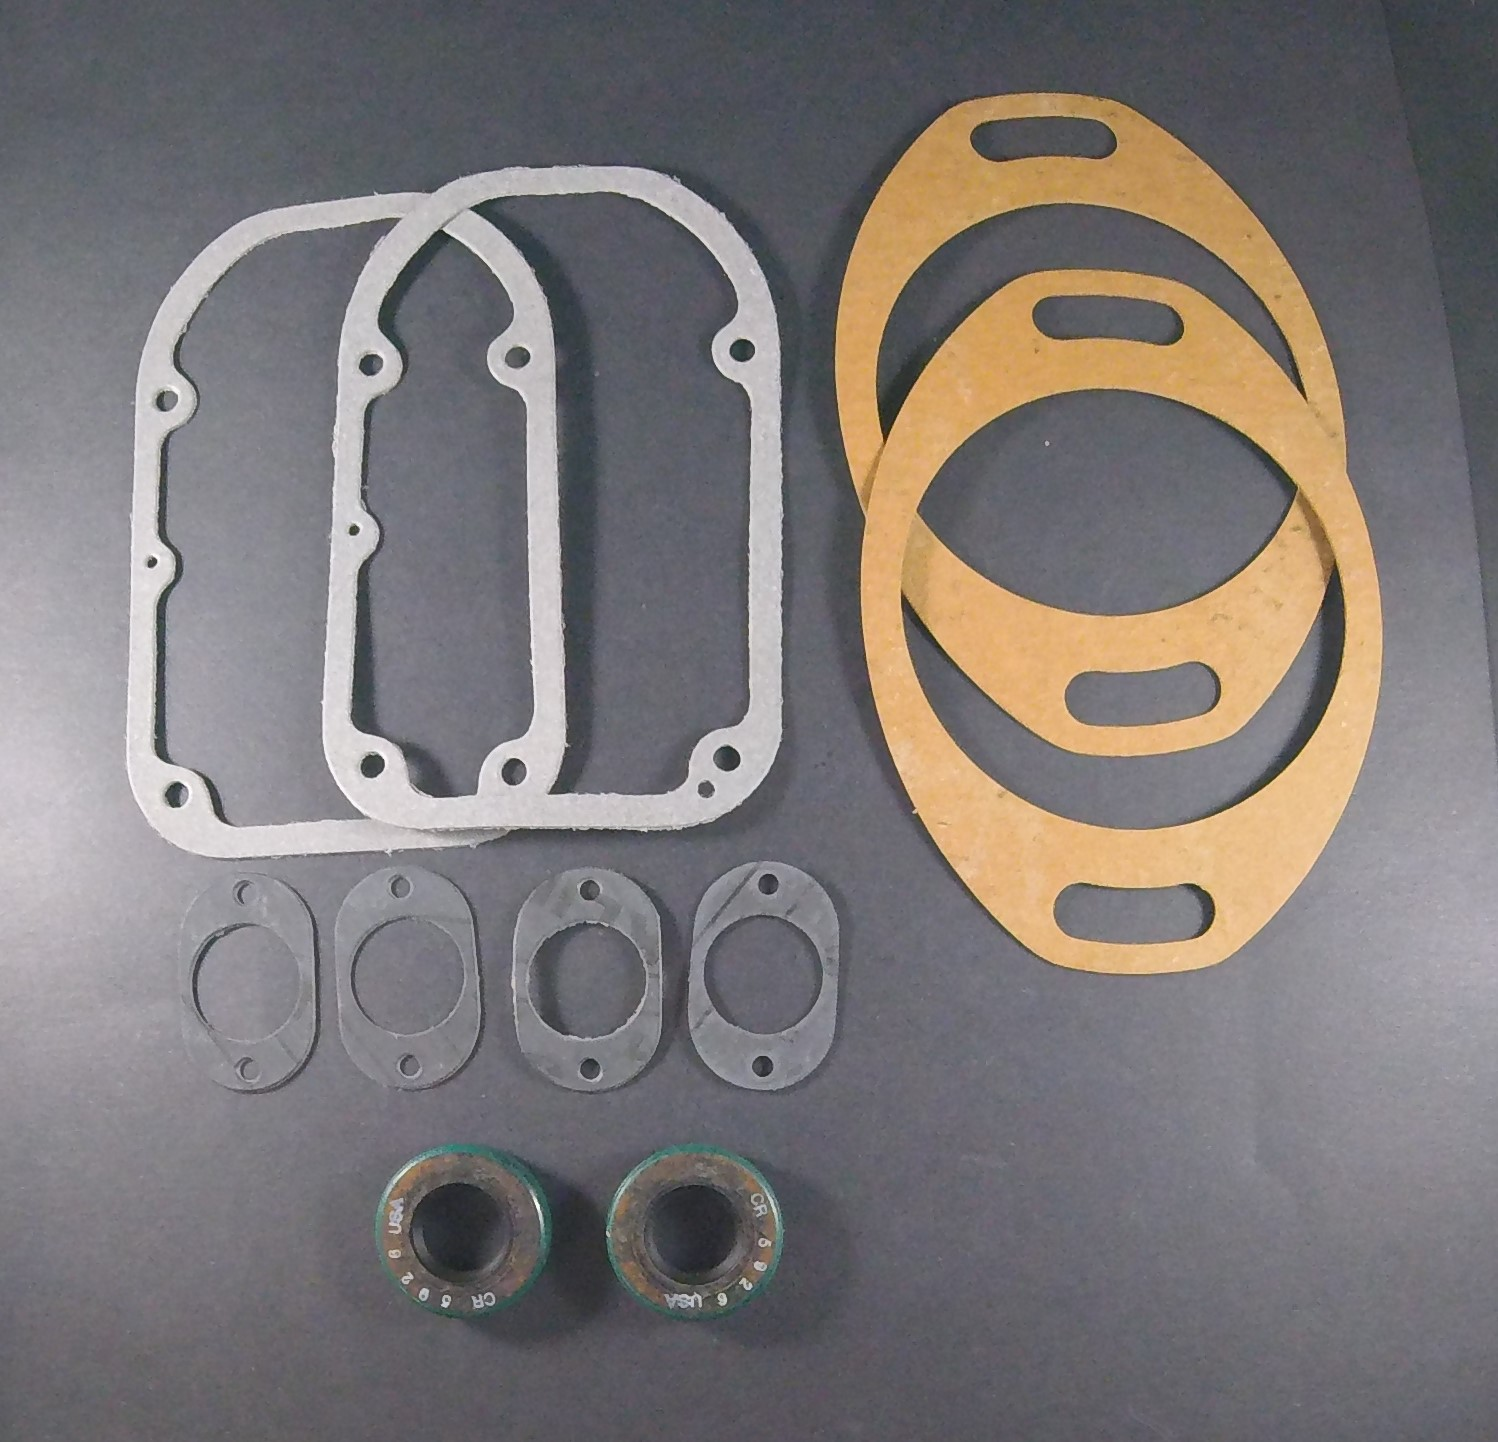 Gasket/Seal Set Eisemann AM4/6 Magneto (Two Magnetos) - Fresno Airparts Co